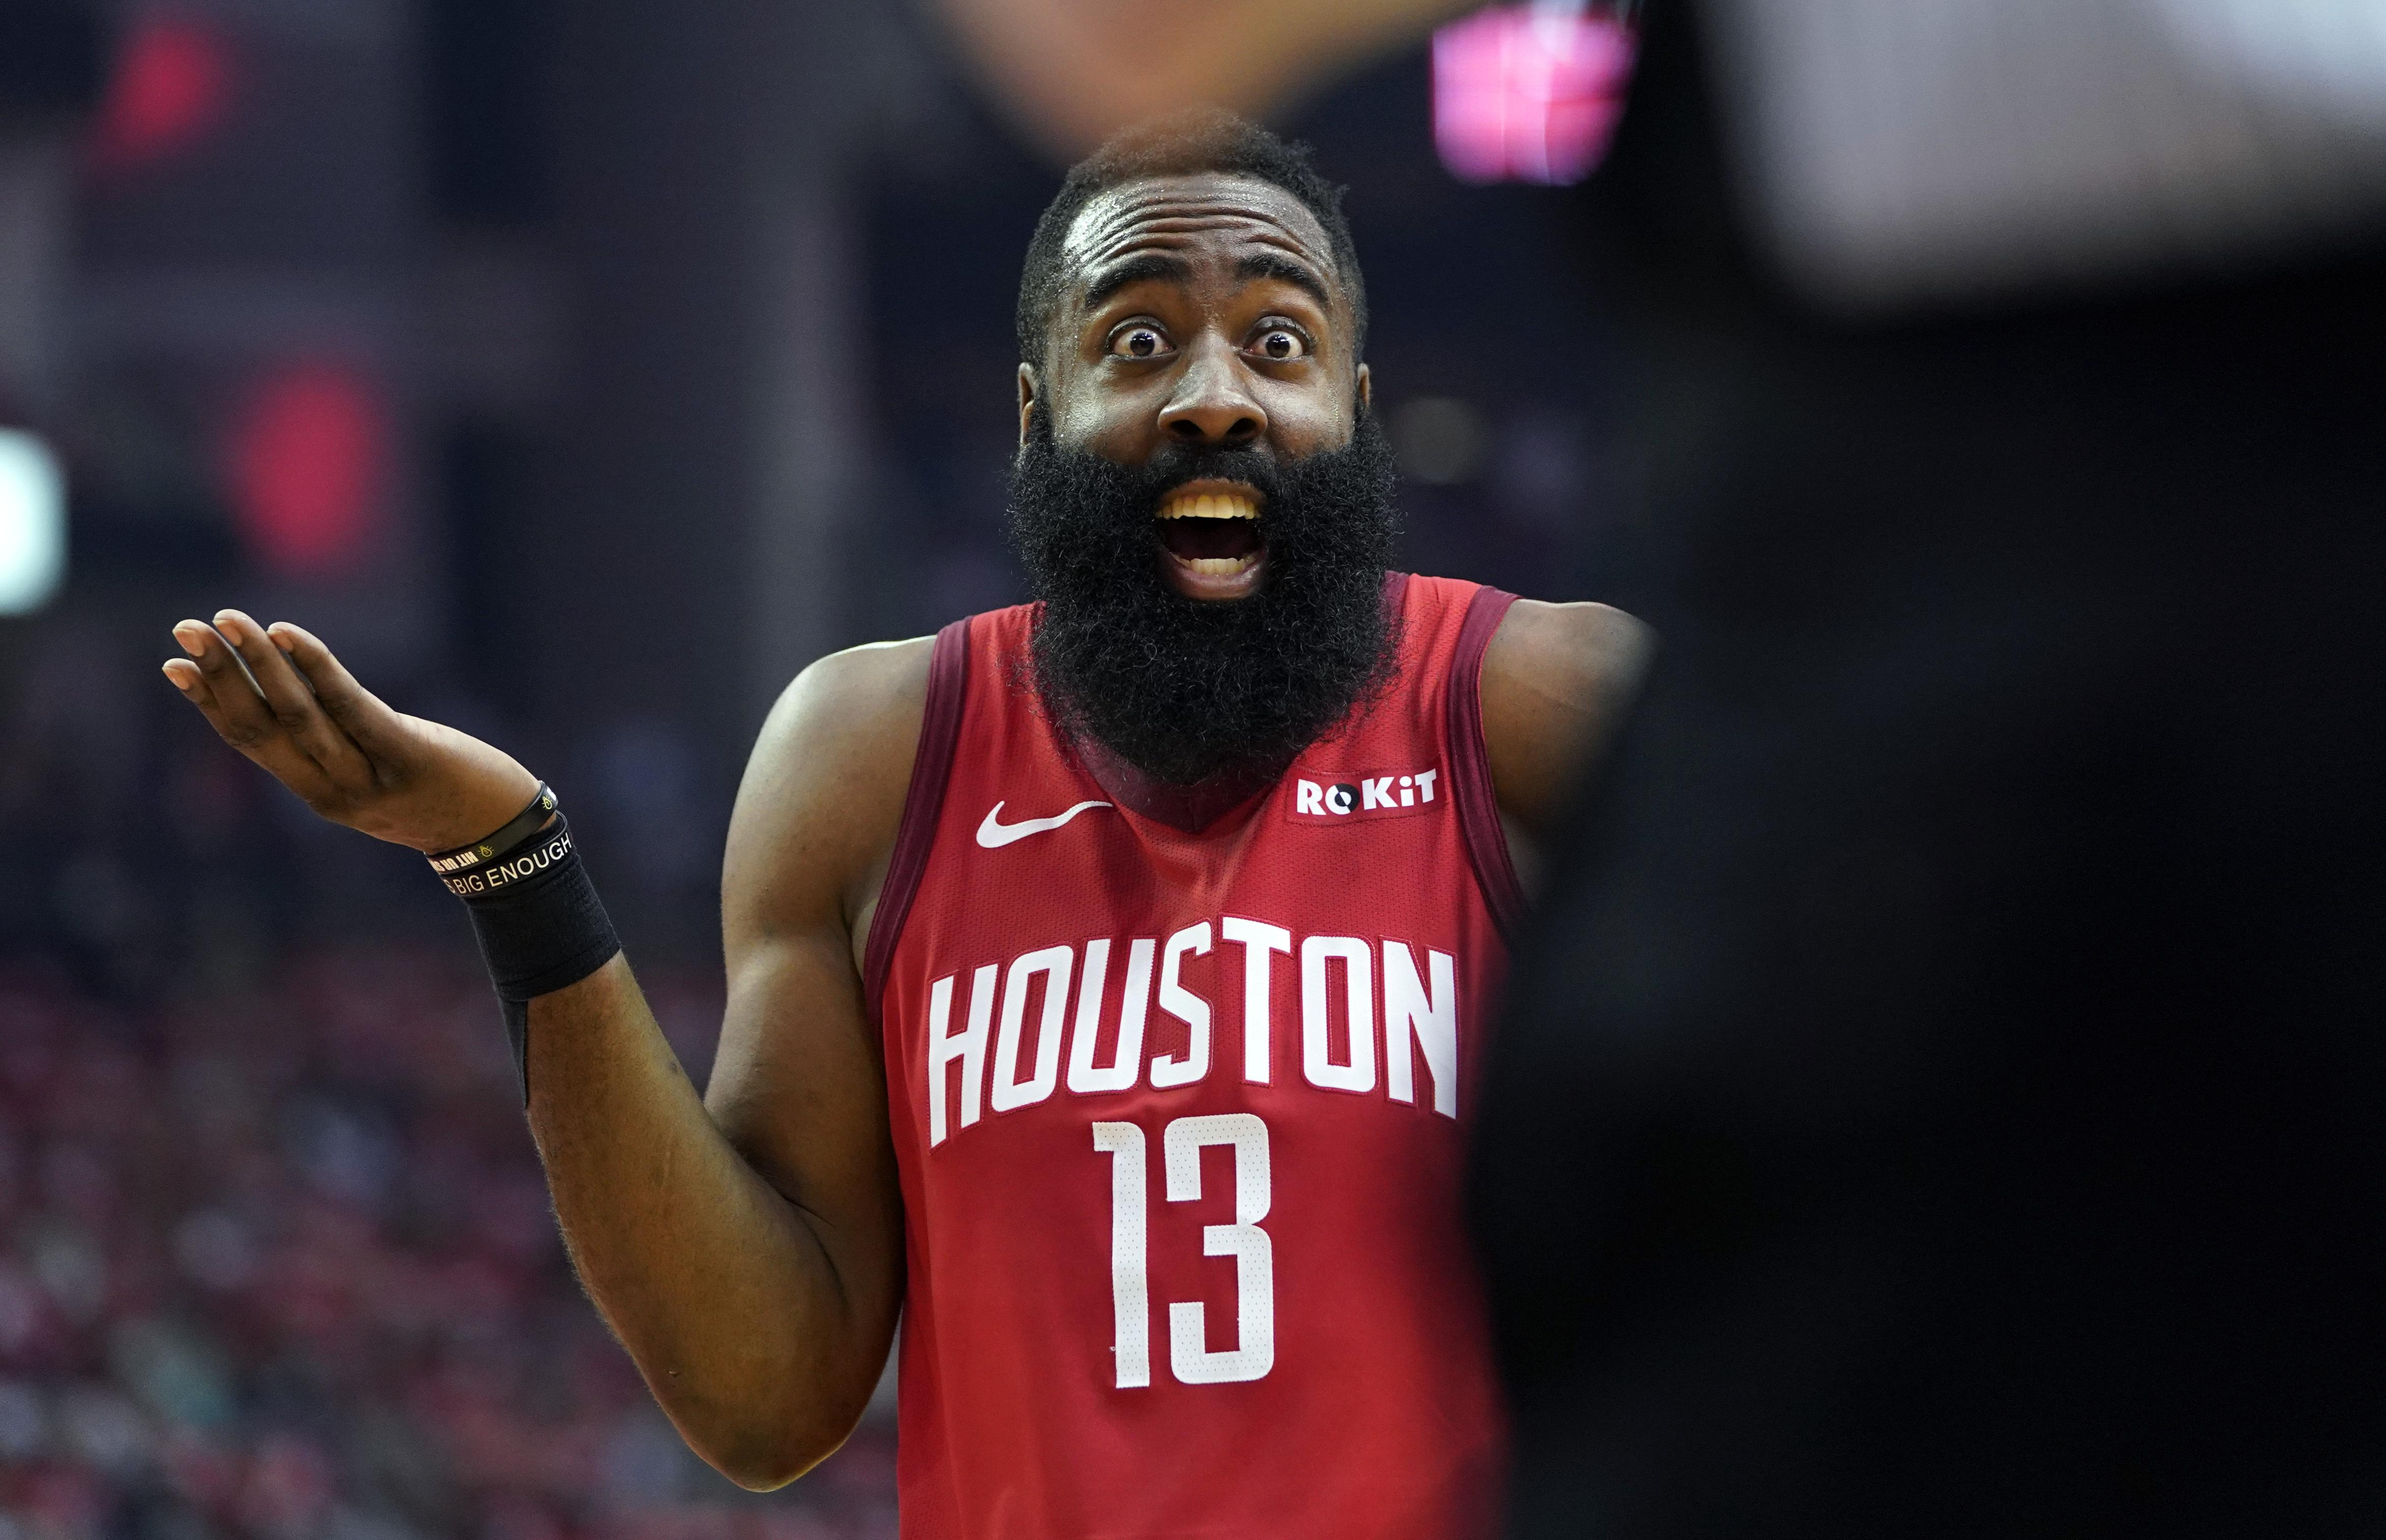 fd248a6e26c5 Houston Rockets guard James Harden (13) reacts to an official s call during  the first